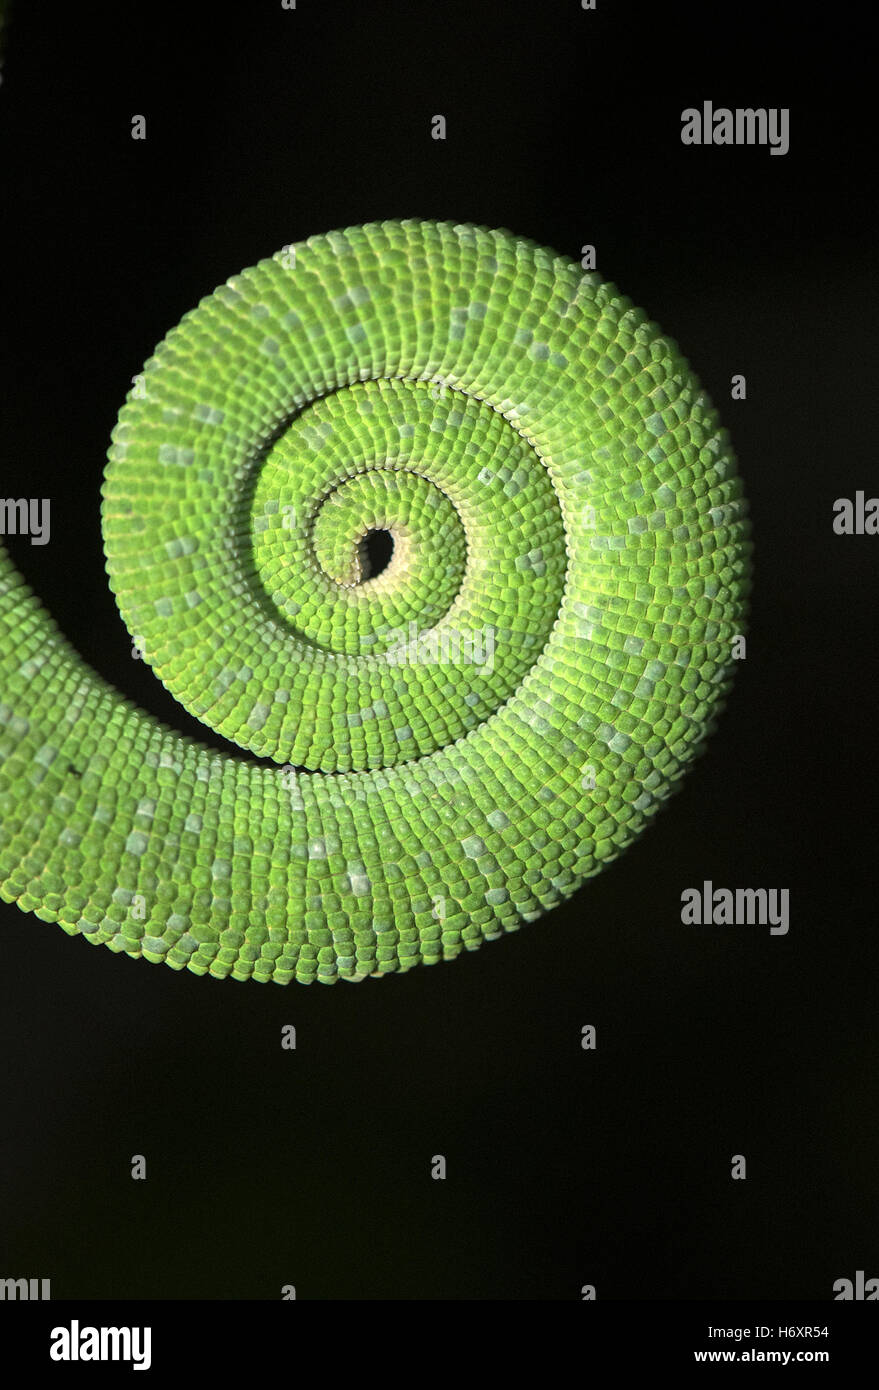 The image of Tail of Chameleon ( Chamaeleo zeylanicus) was taken near Pune, India - Stock Image